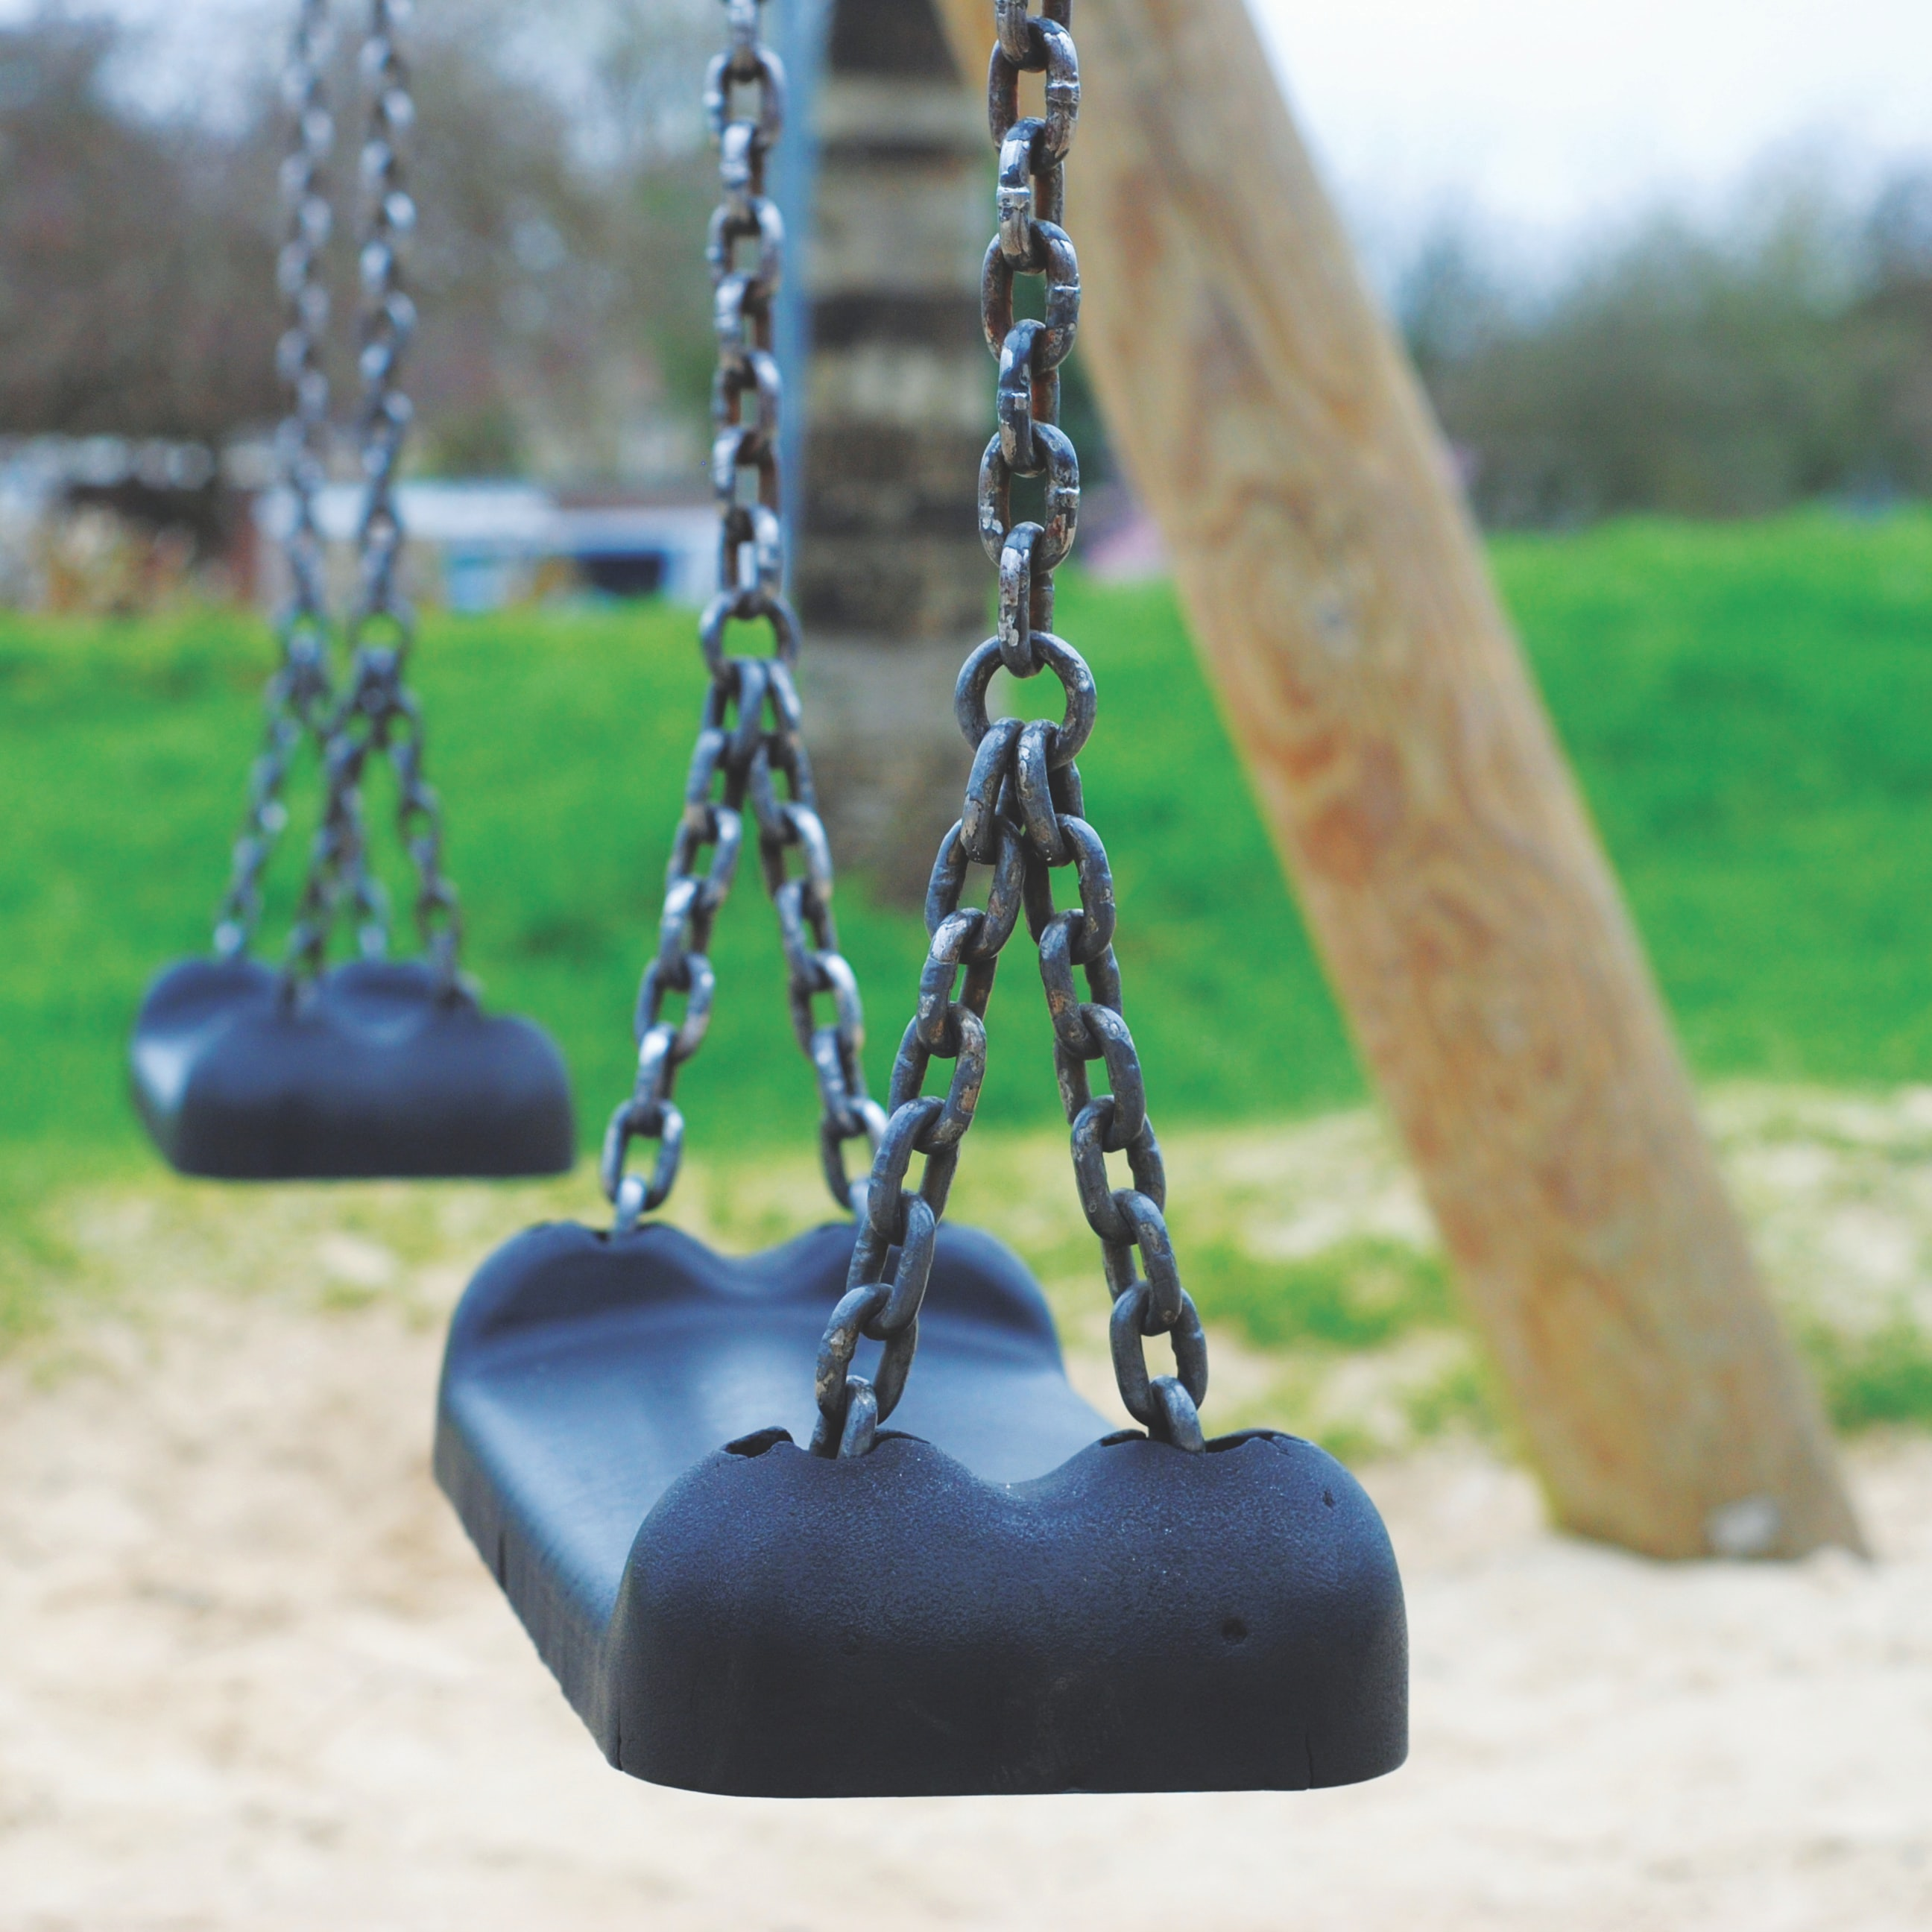 shallow focus photography of swing